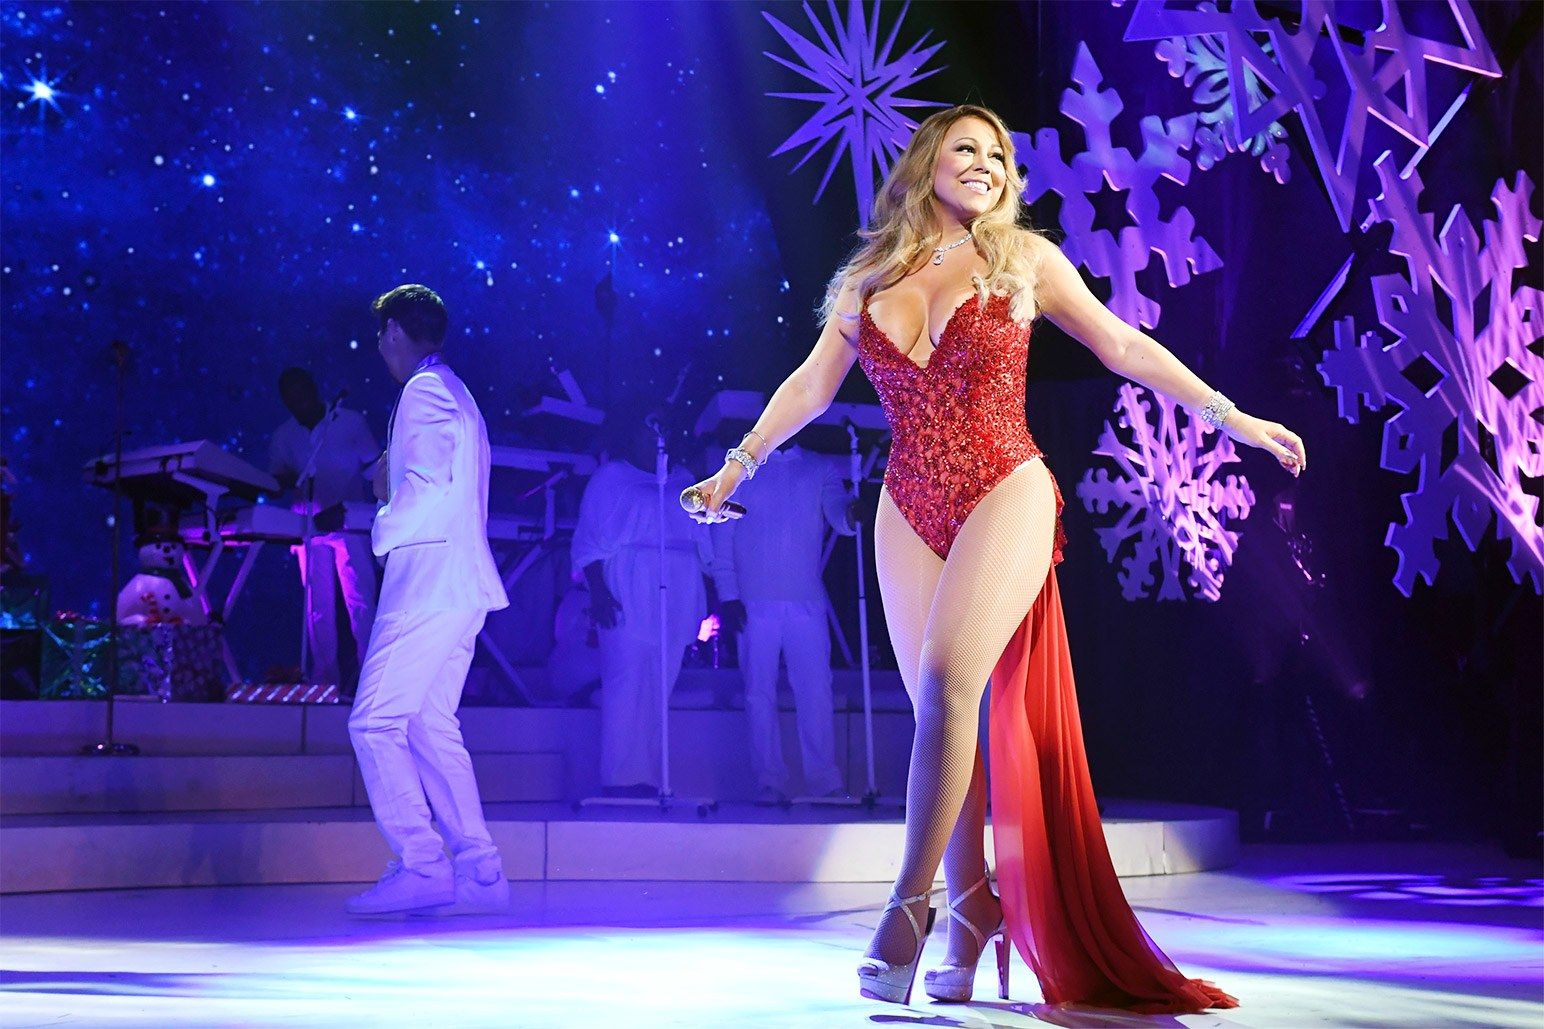 Mariah Carey performing in concert